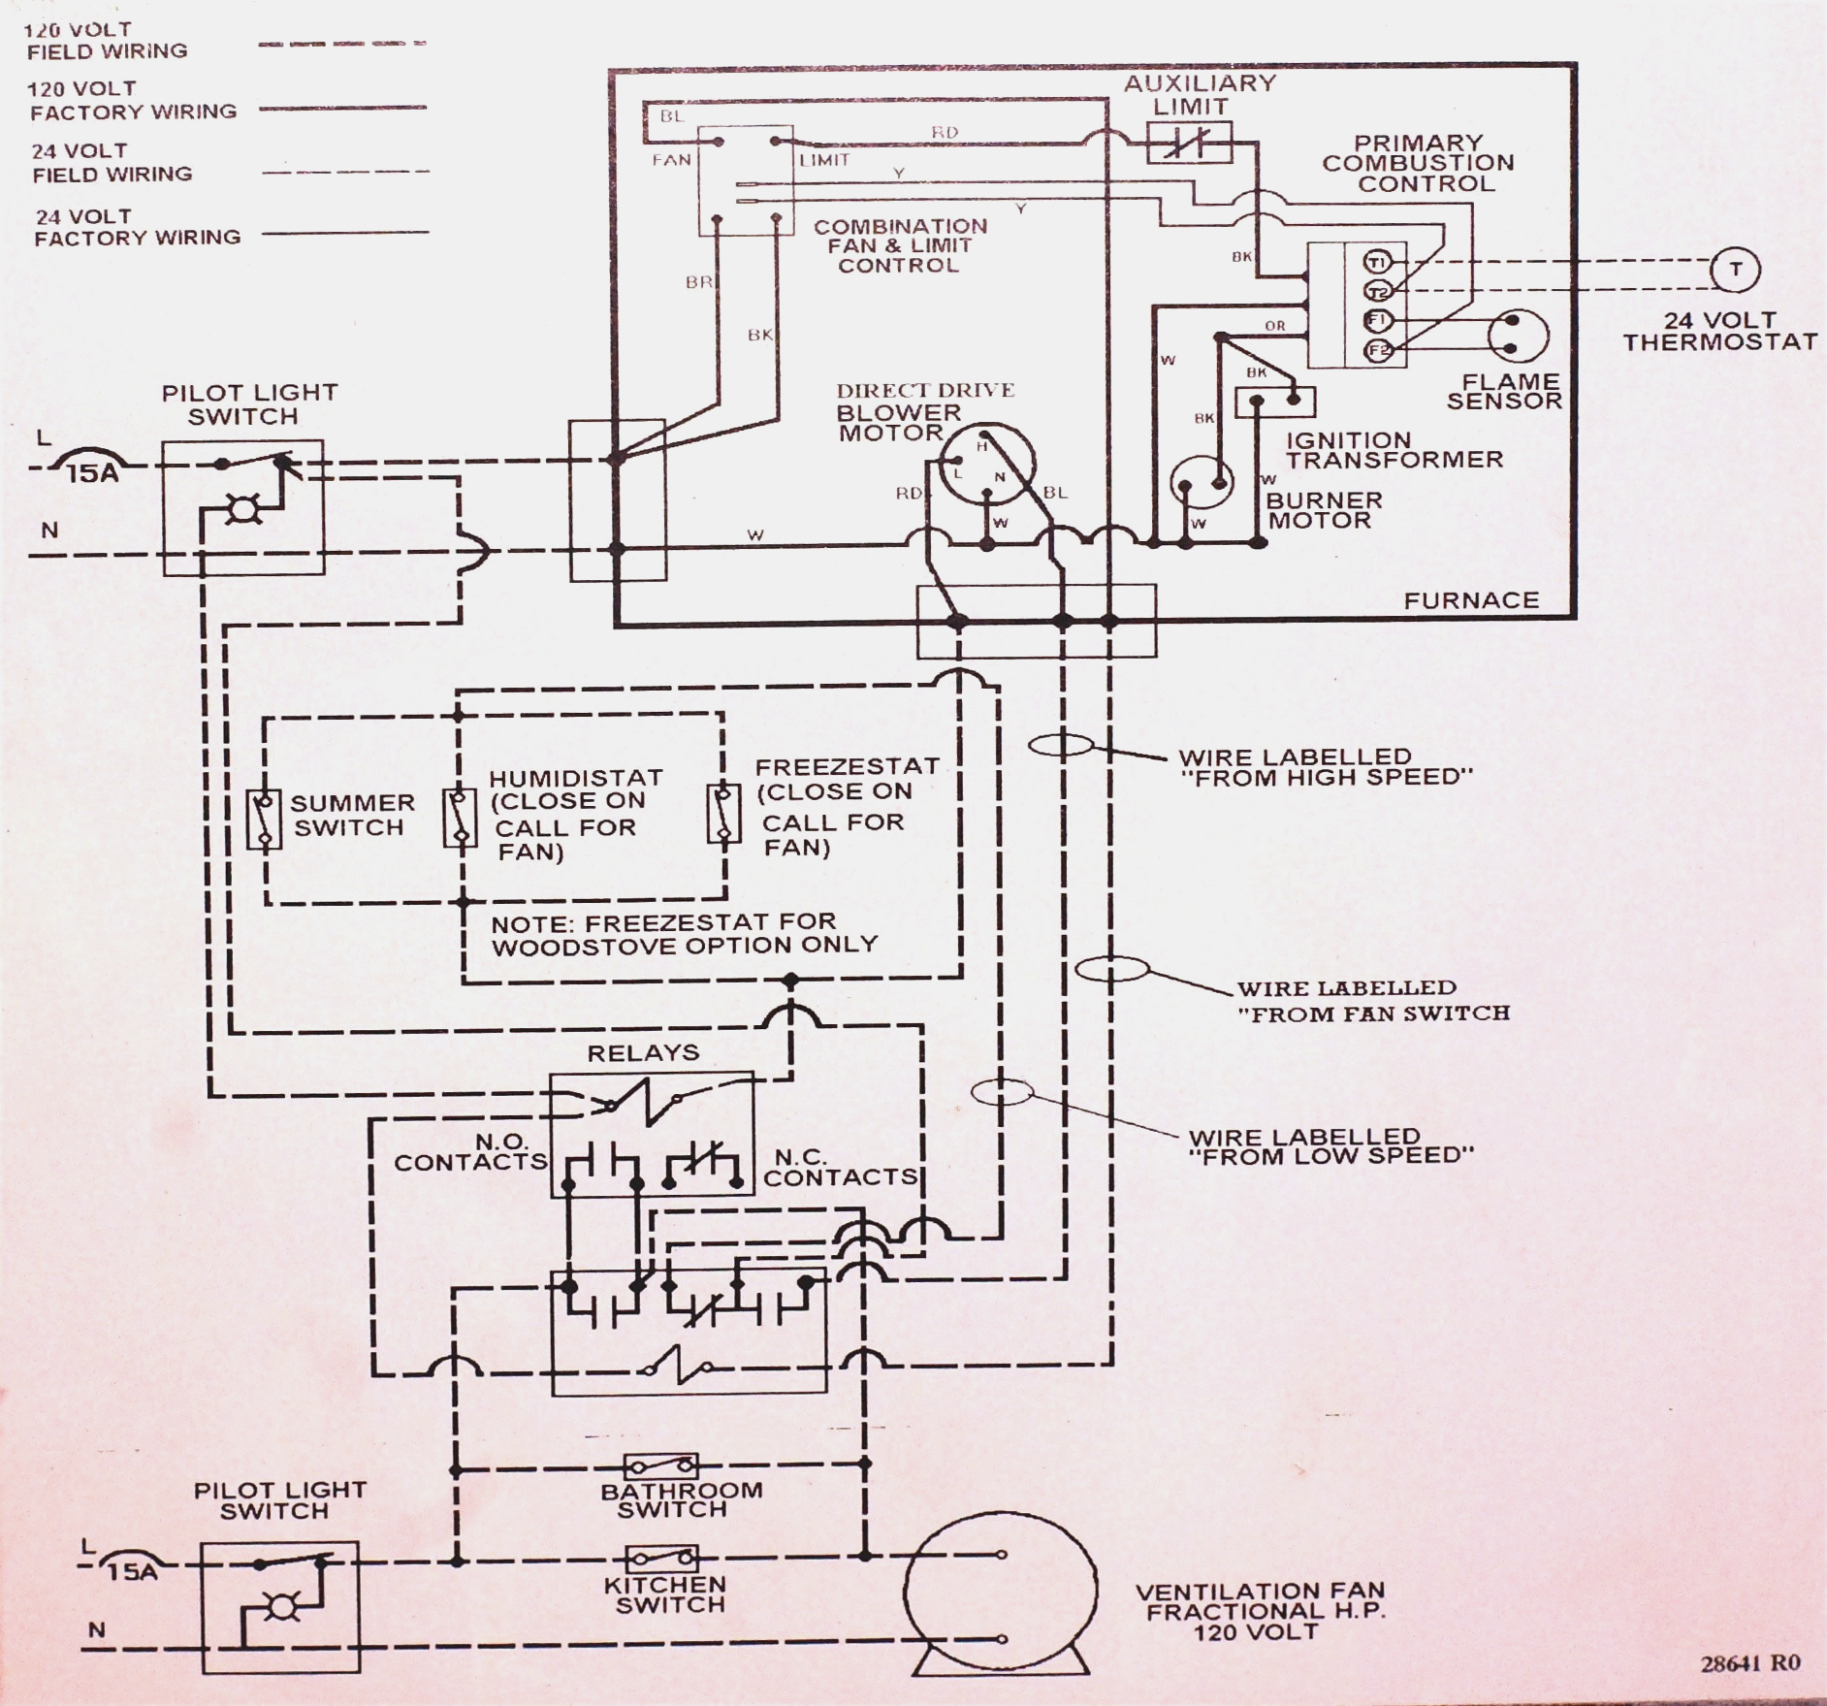 Awesome Aprilaire 700M Wiring Diagrams Honeywell Digital Thermostat Wiring Wiring 101 Akebretraxxcnl